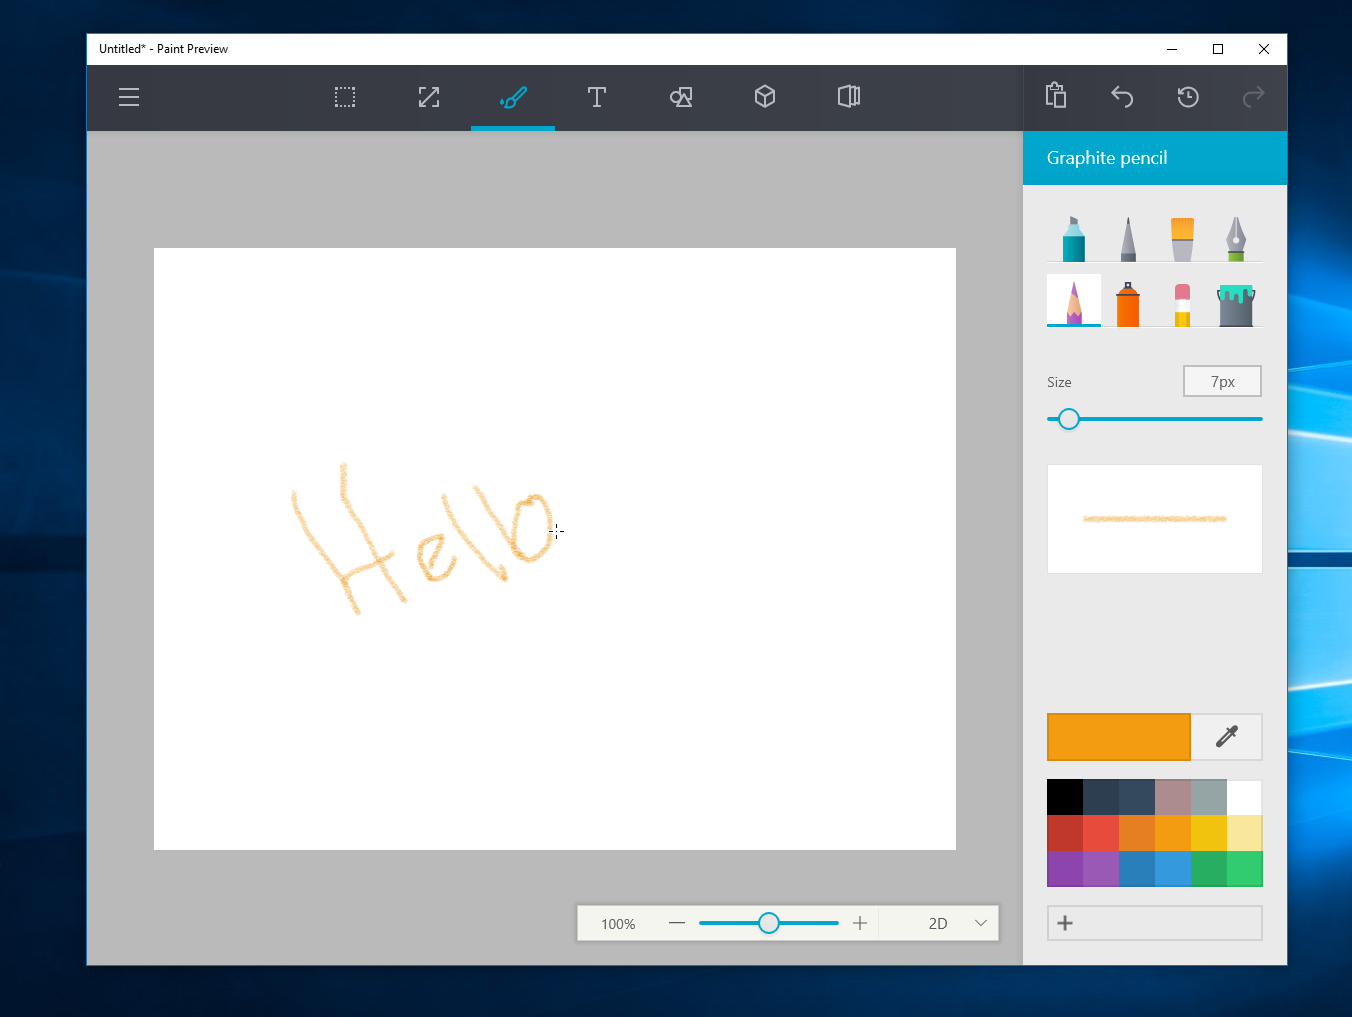 microsoft tendr a una nueva app de paint para windows 10